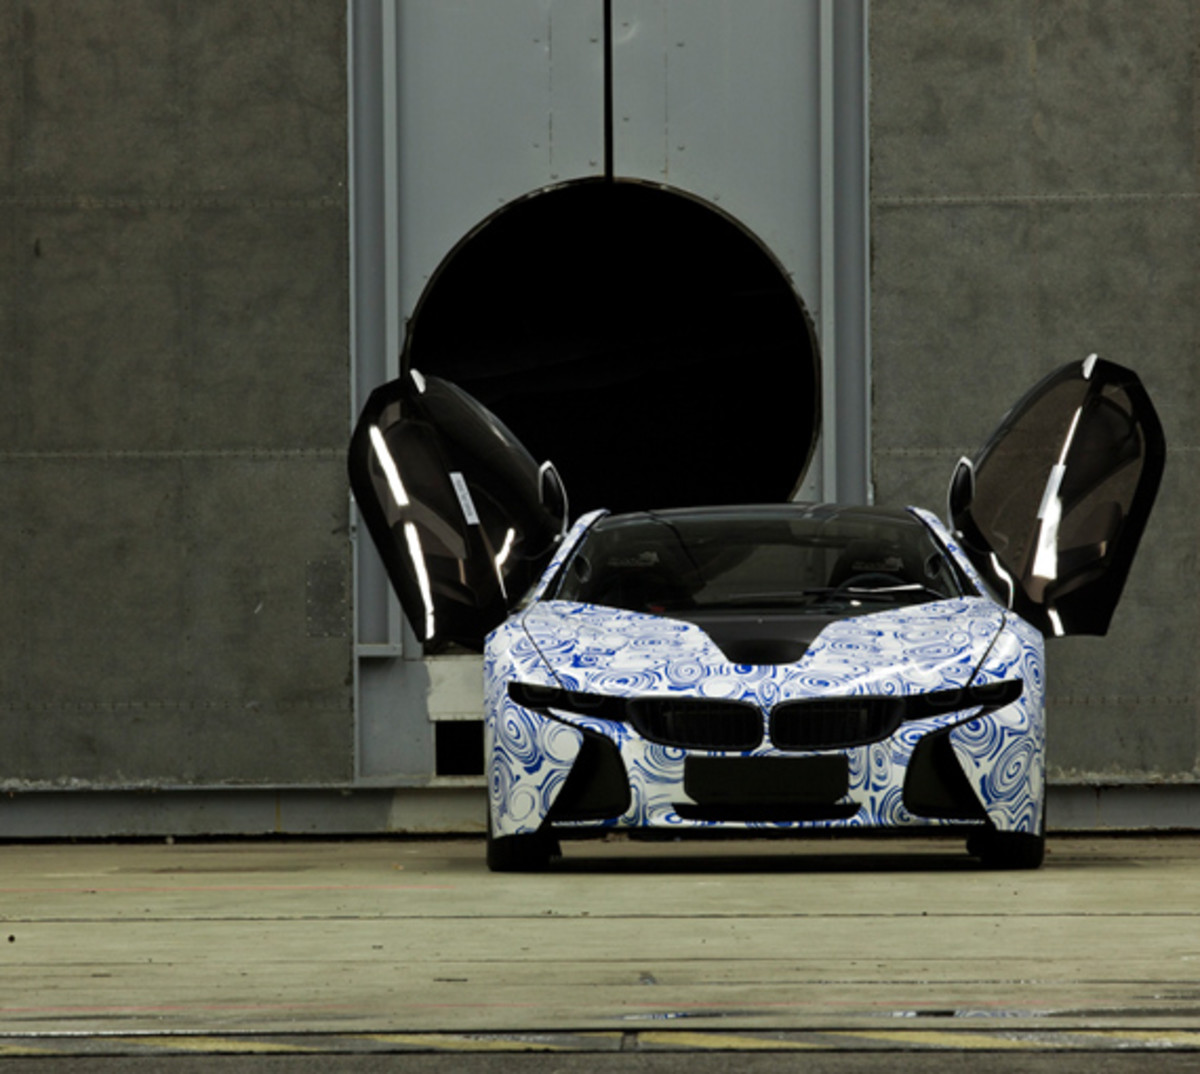 BMW-Vision-EfficientDynamics-test-track-16